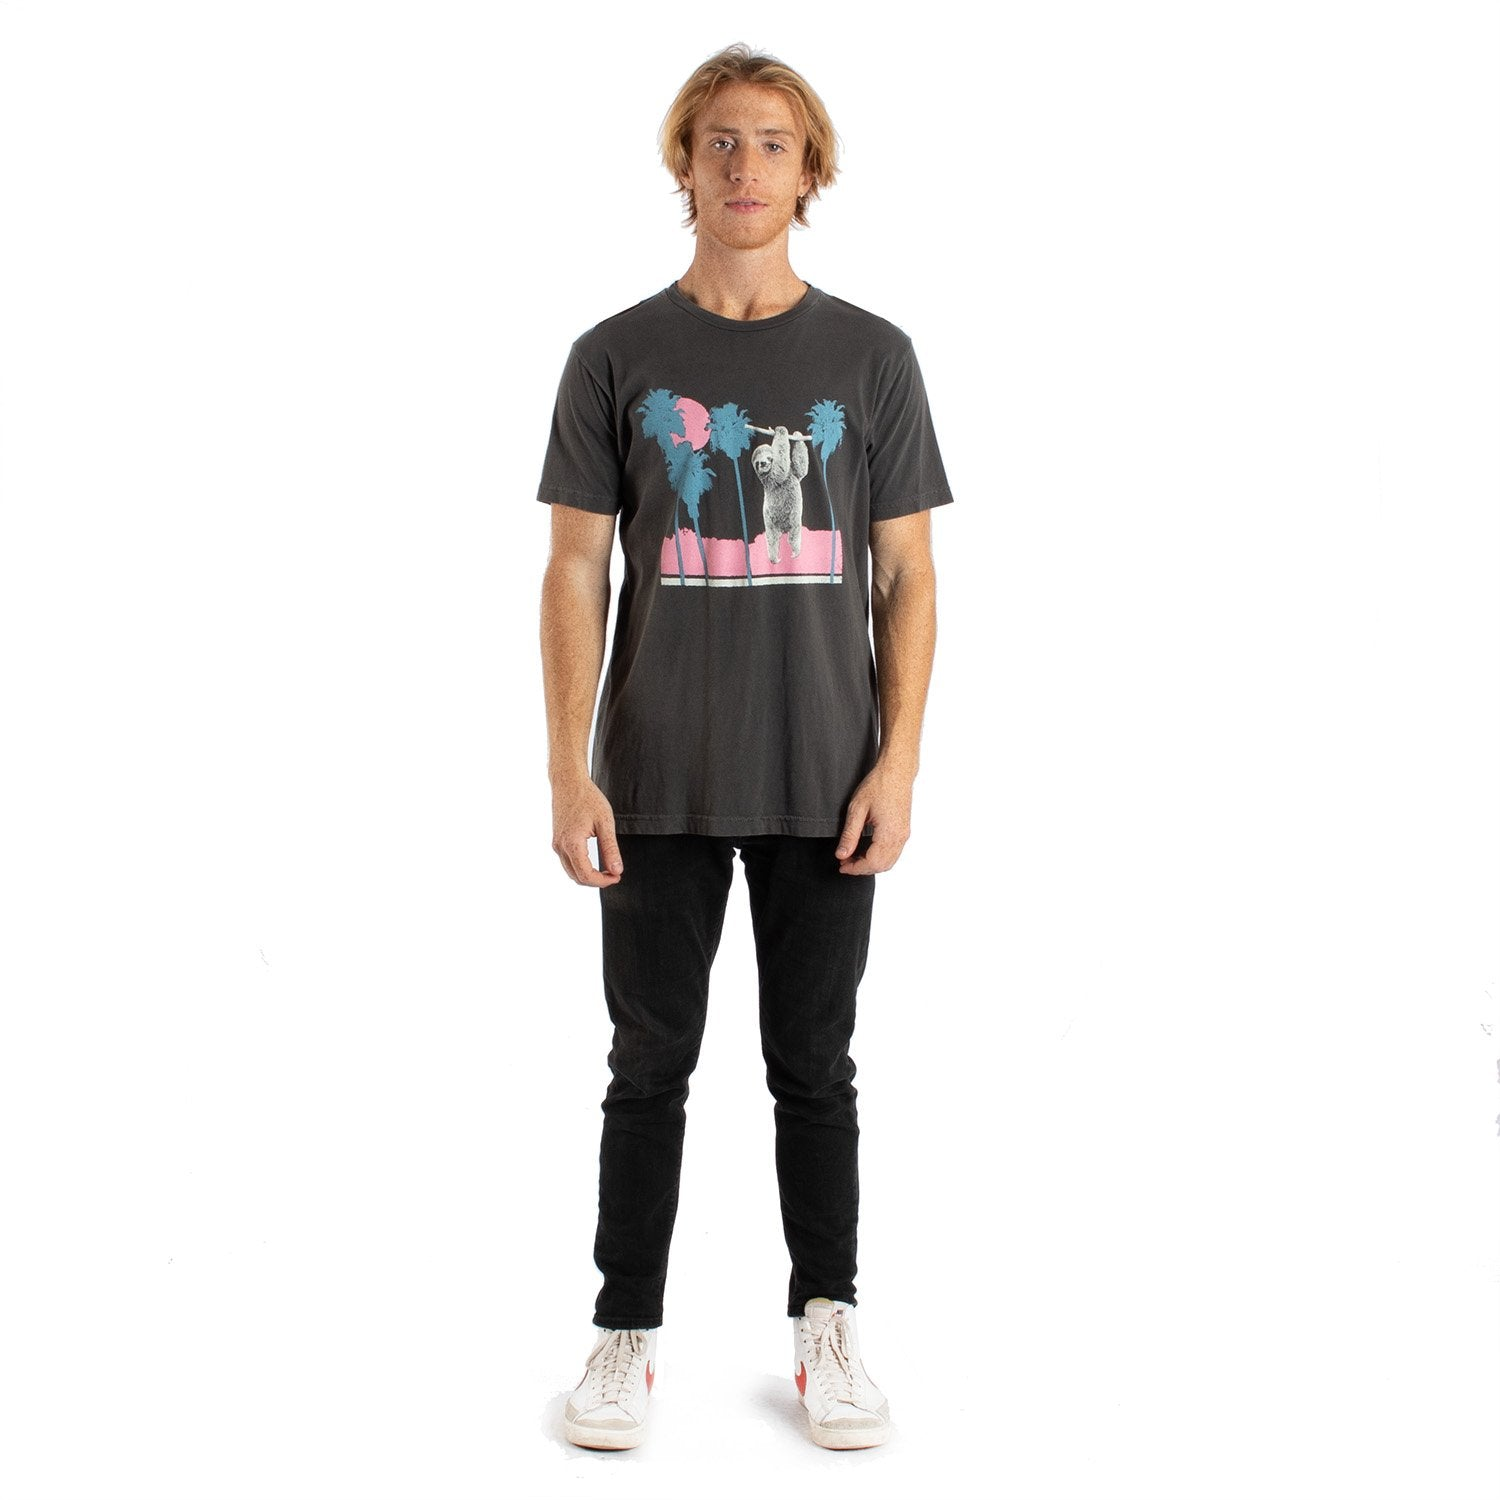 Altru Apparel Sloth Hang Palm Tree Tee